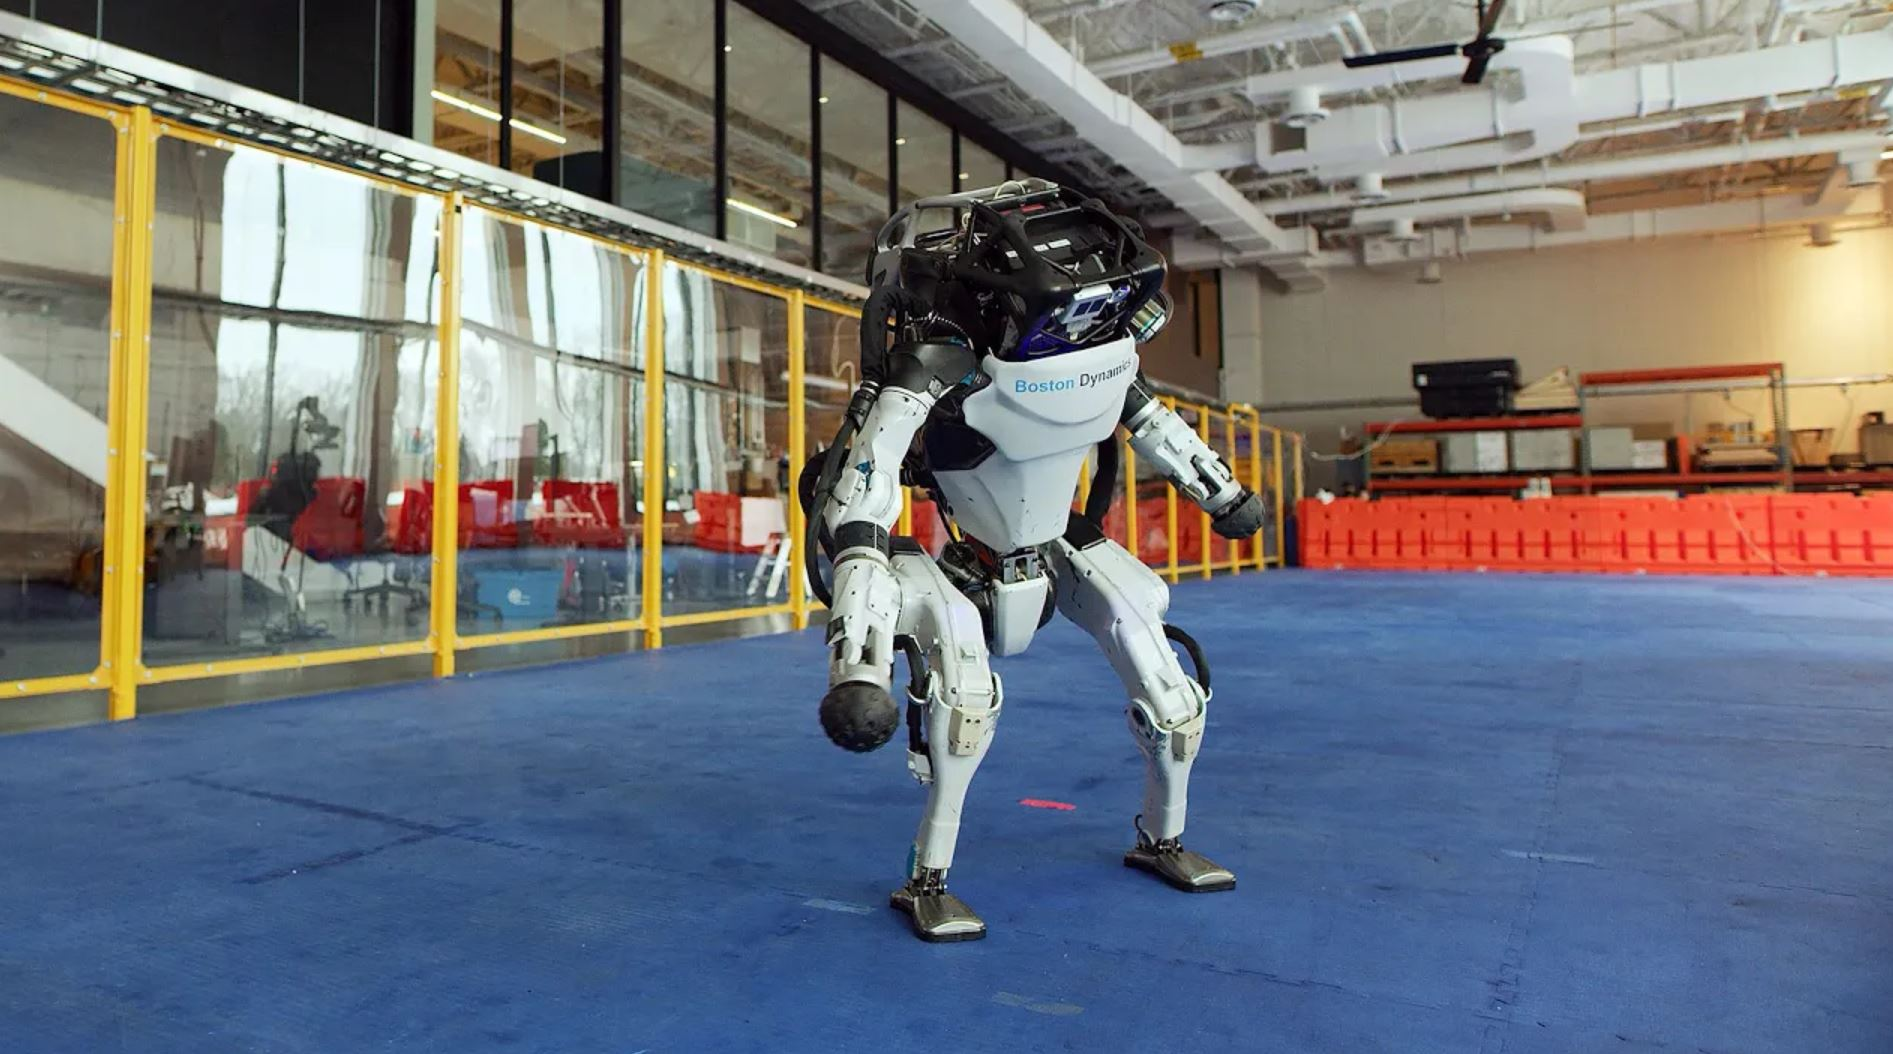 Boston Dynamics' Robots Learn How To Dance In Creepy New Video